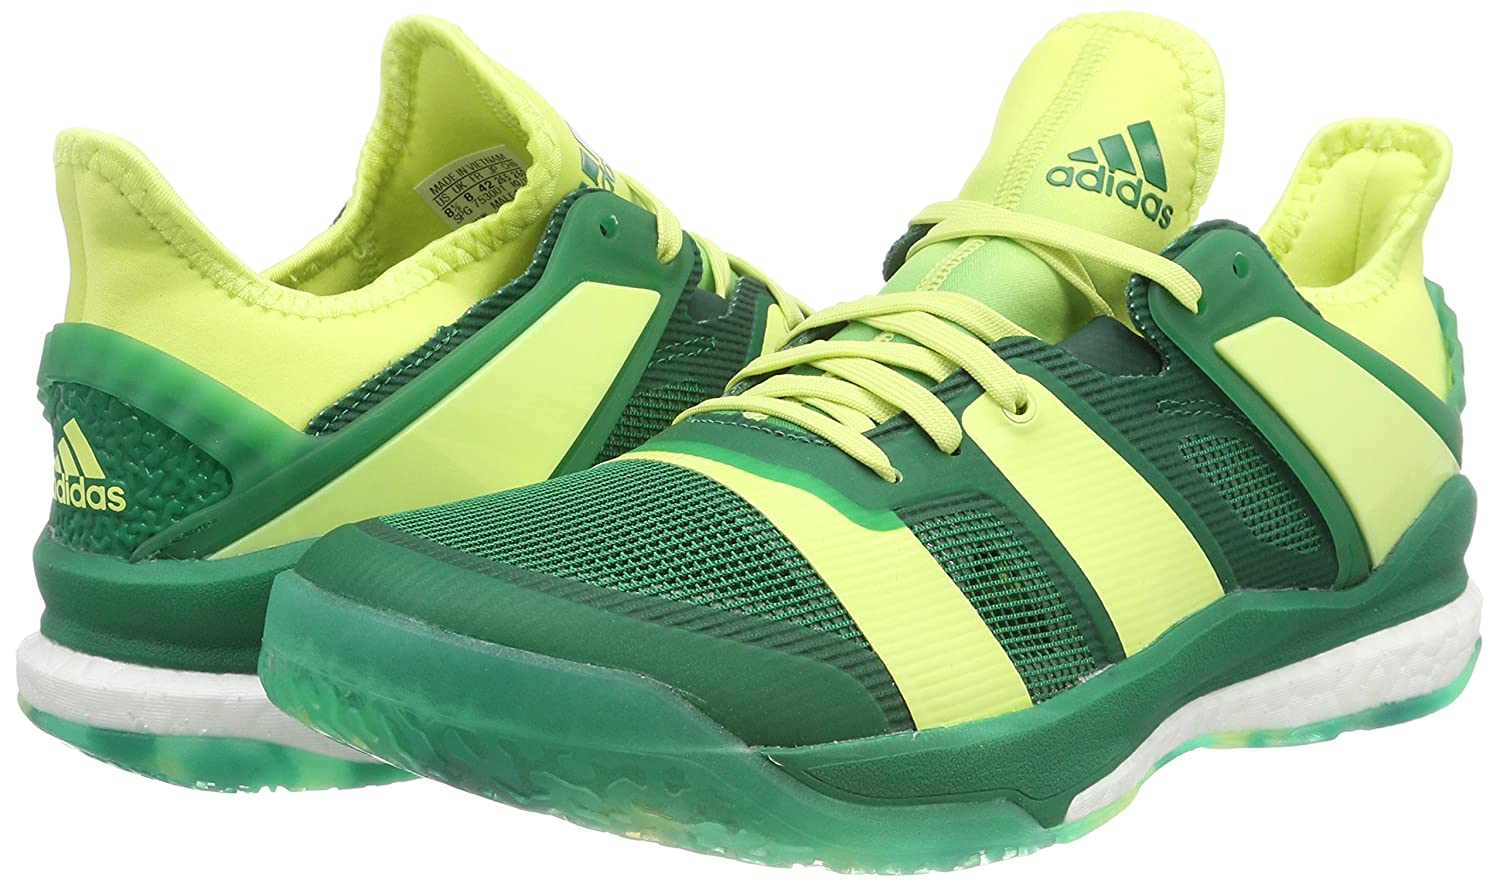 on sale bad3d b340b adidas Stabil X, Scarpe da Pallamano Uomo ingrandisci